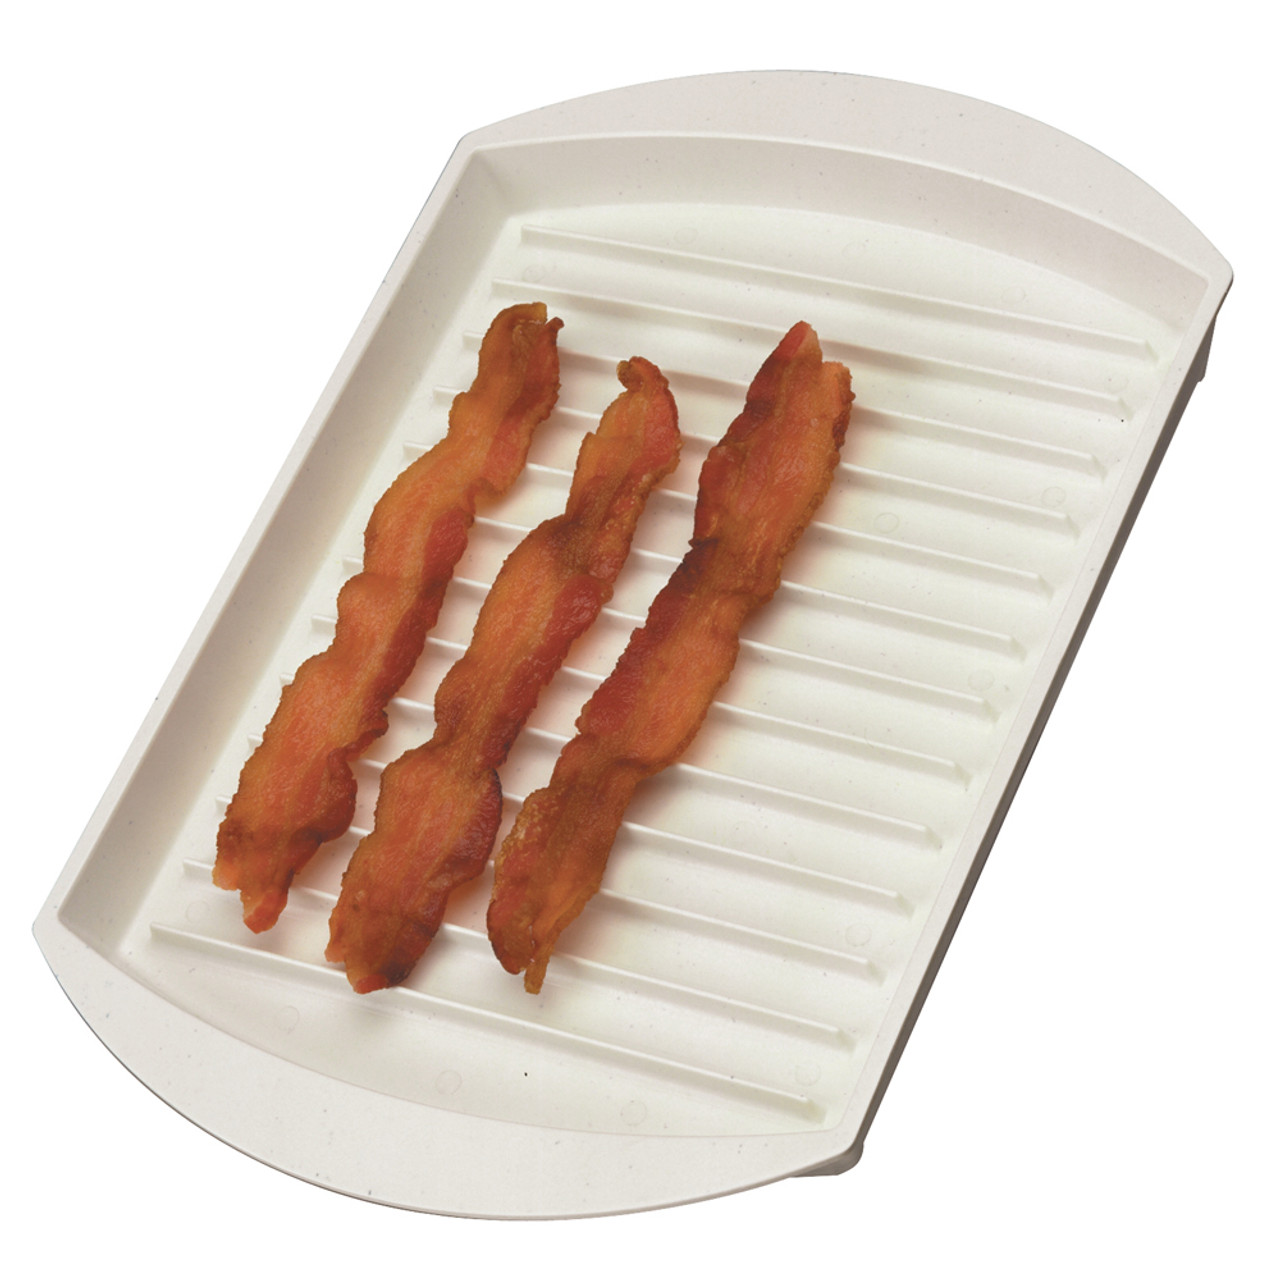 microwave bacon cooker 4 6 pieces